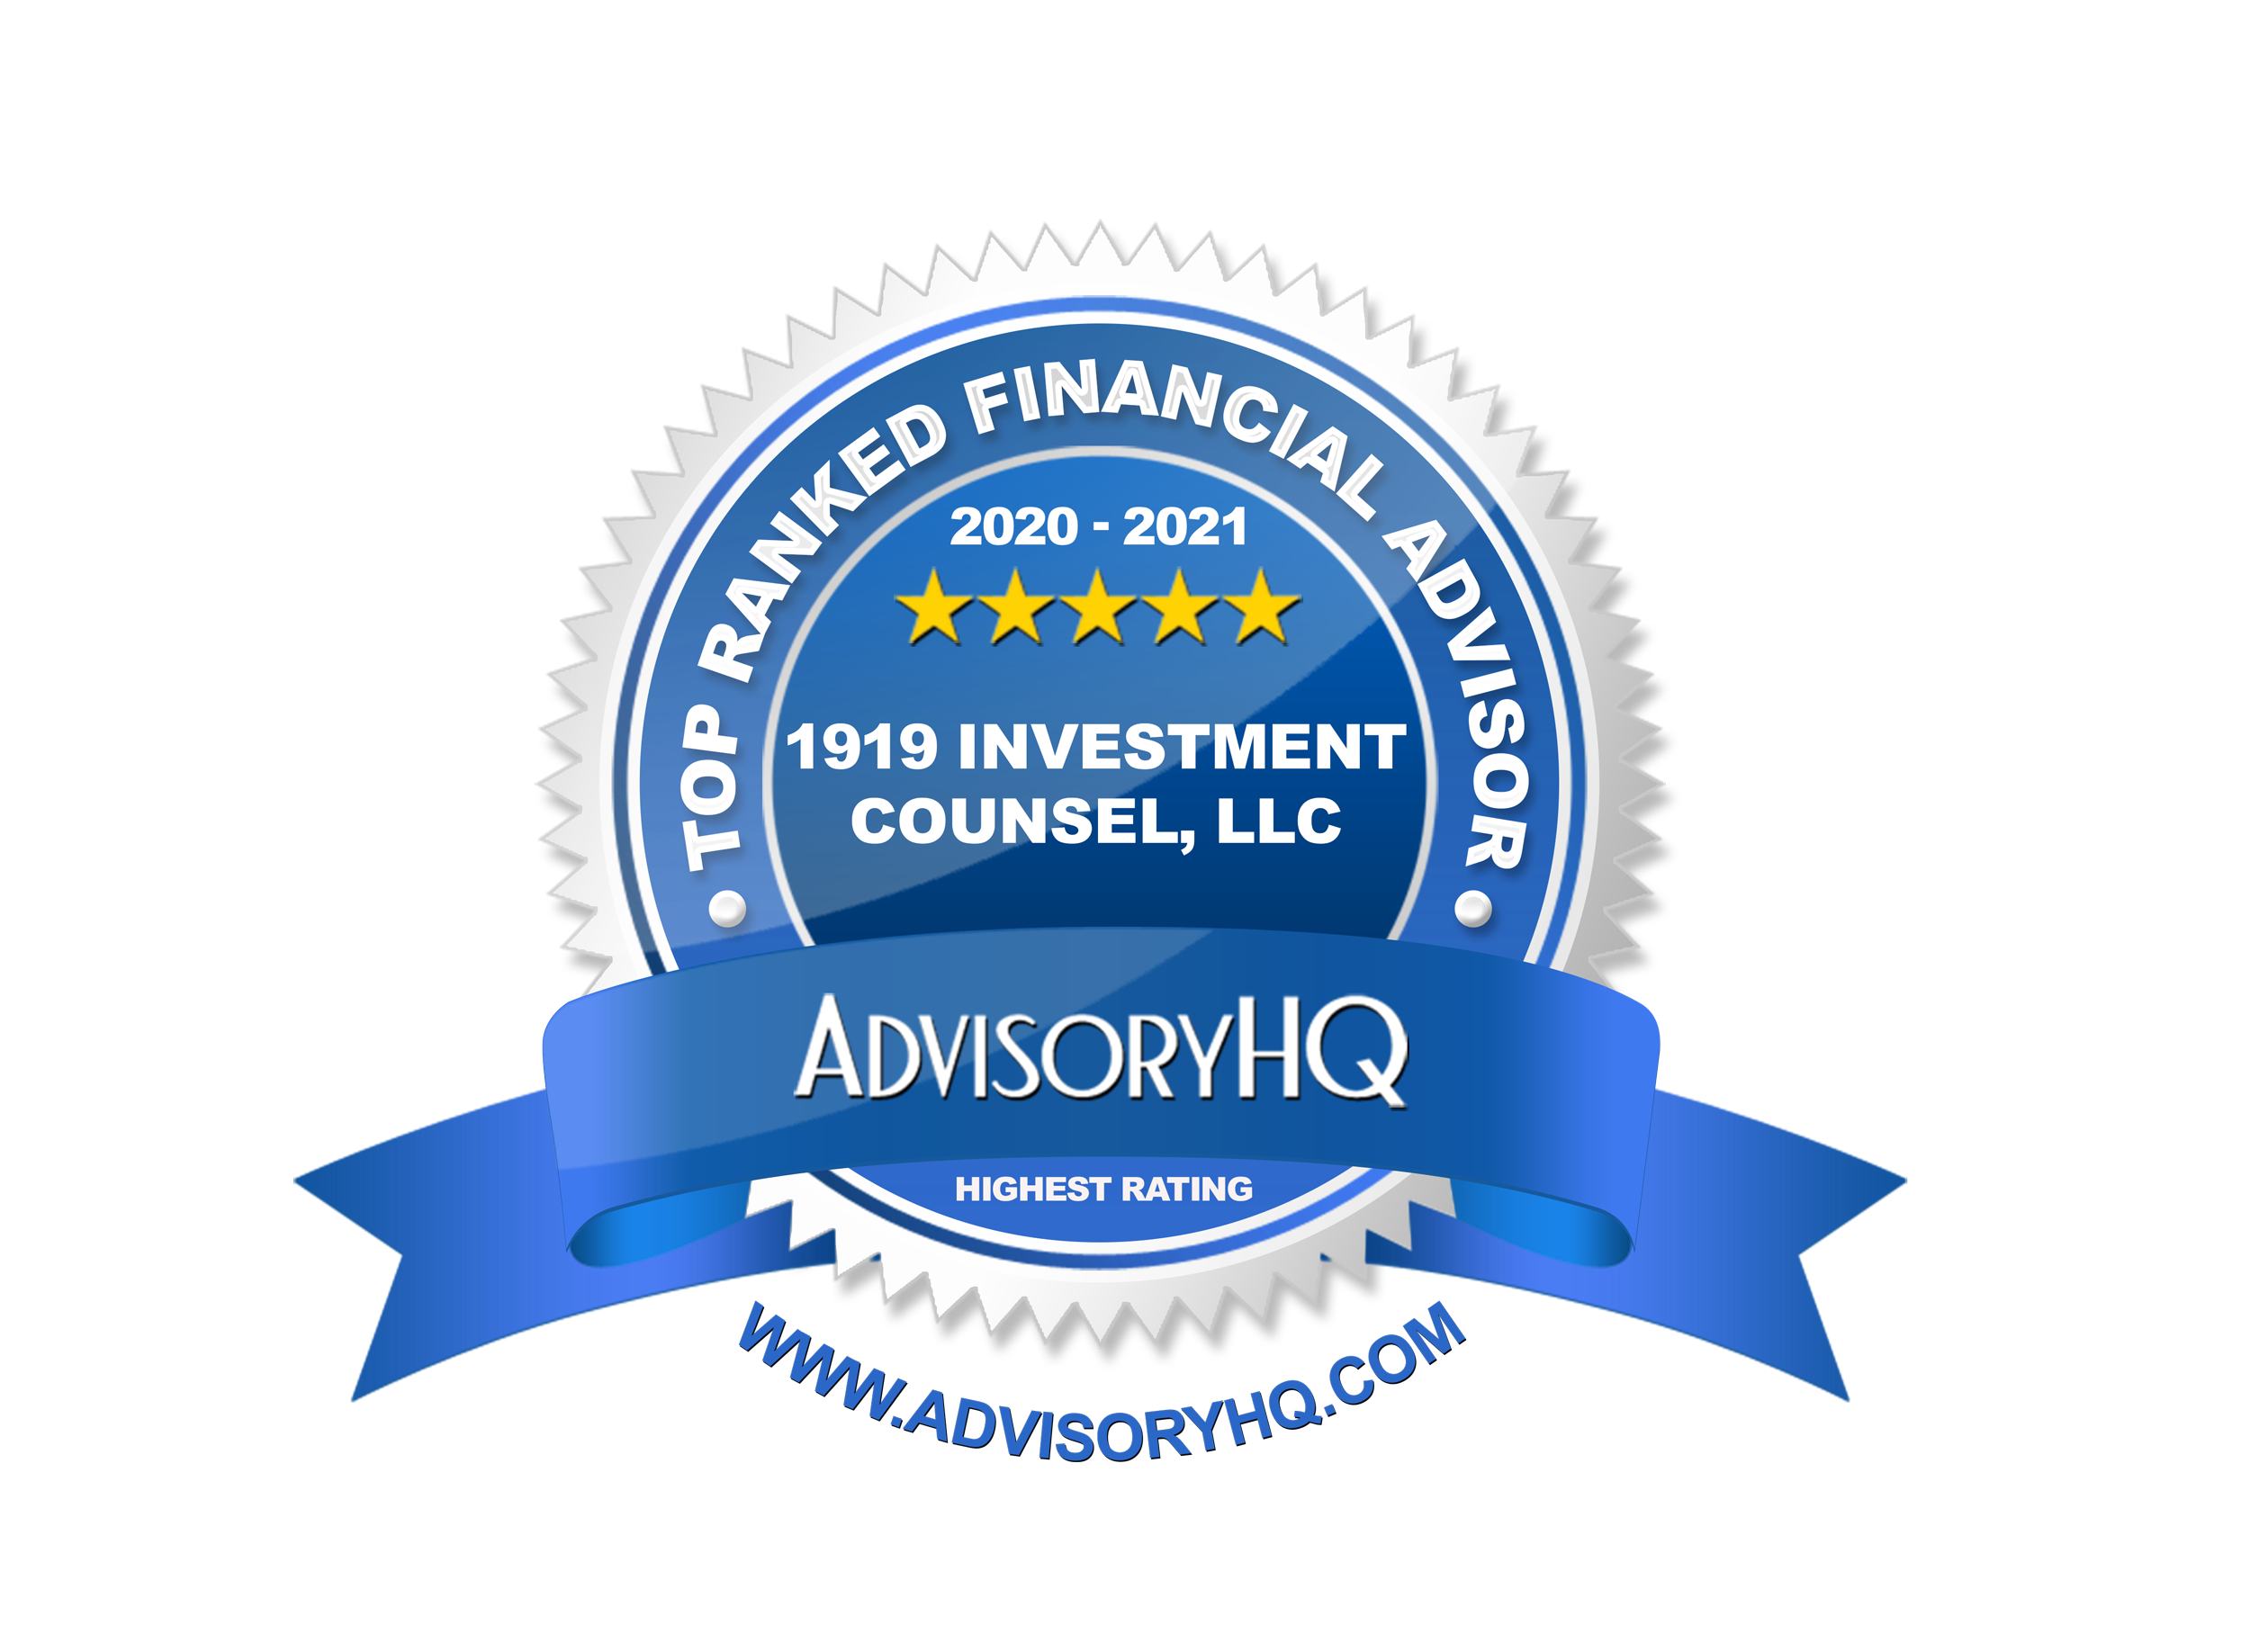 1919-Investment-Counsel-LLC-AHQ-2020-21-Award